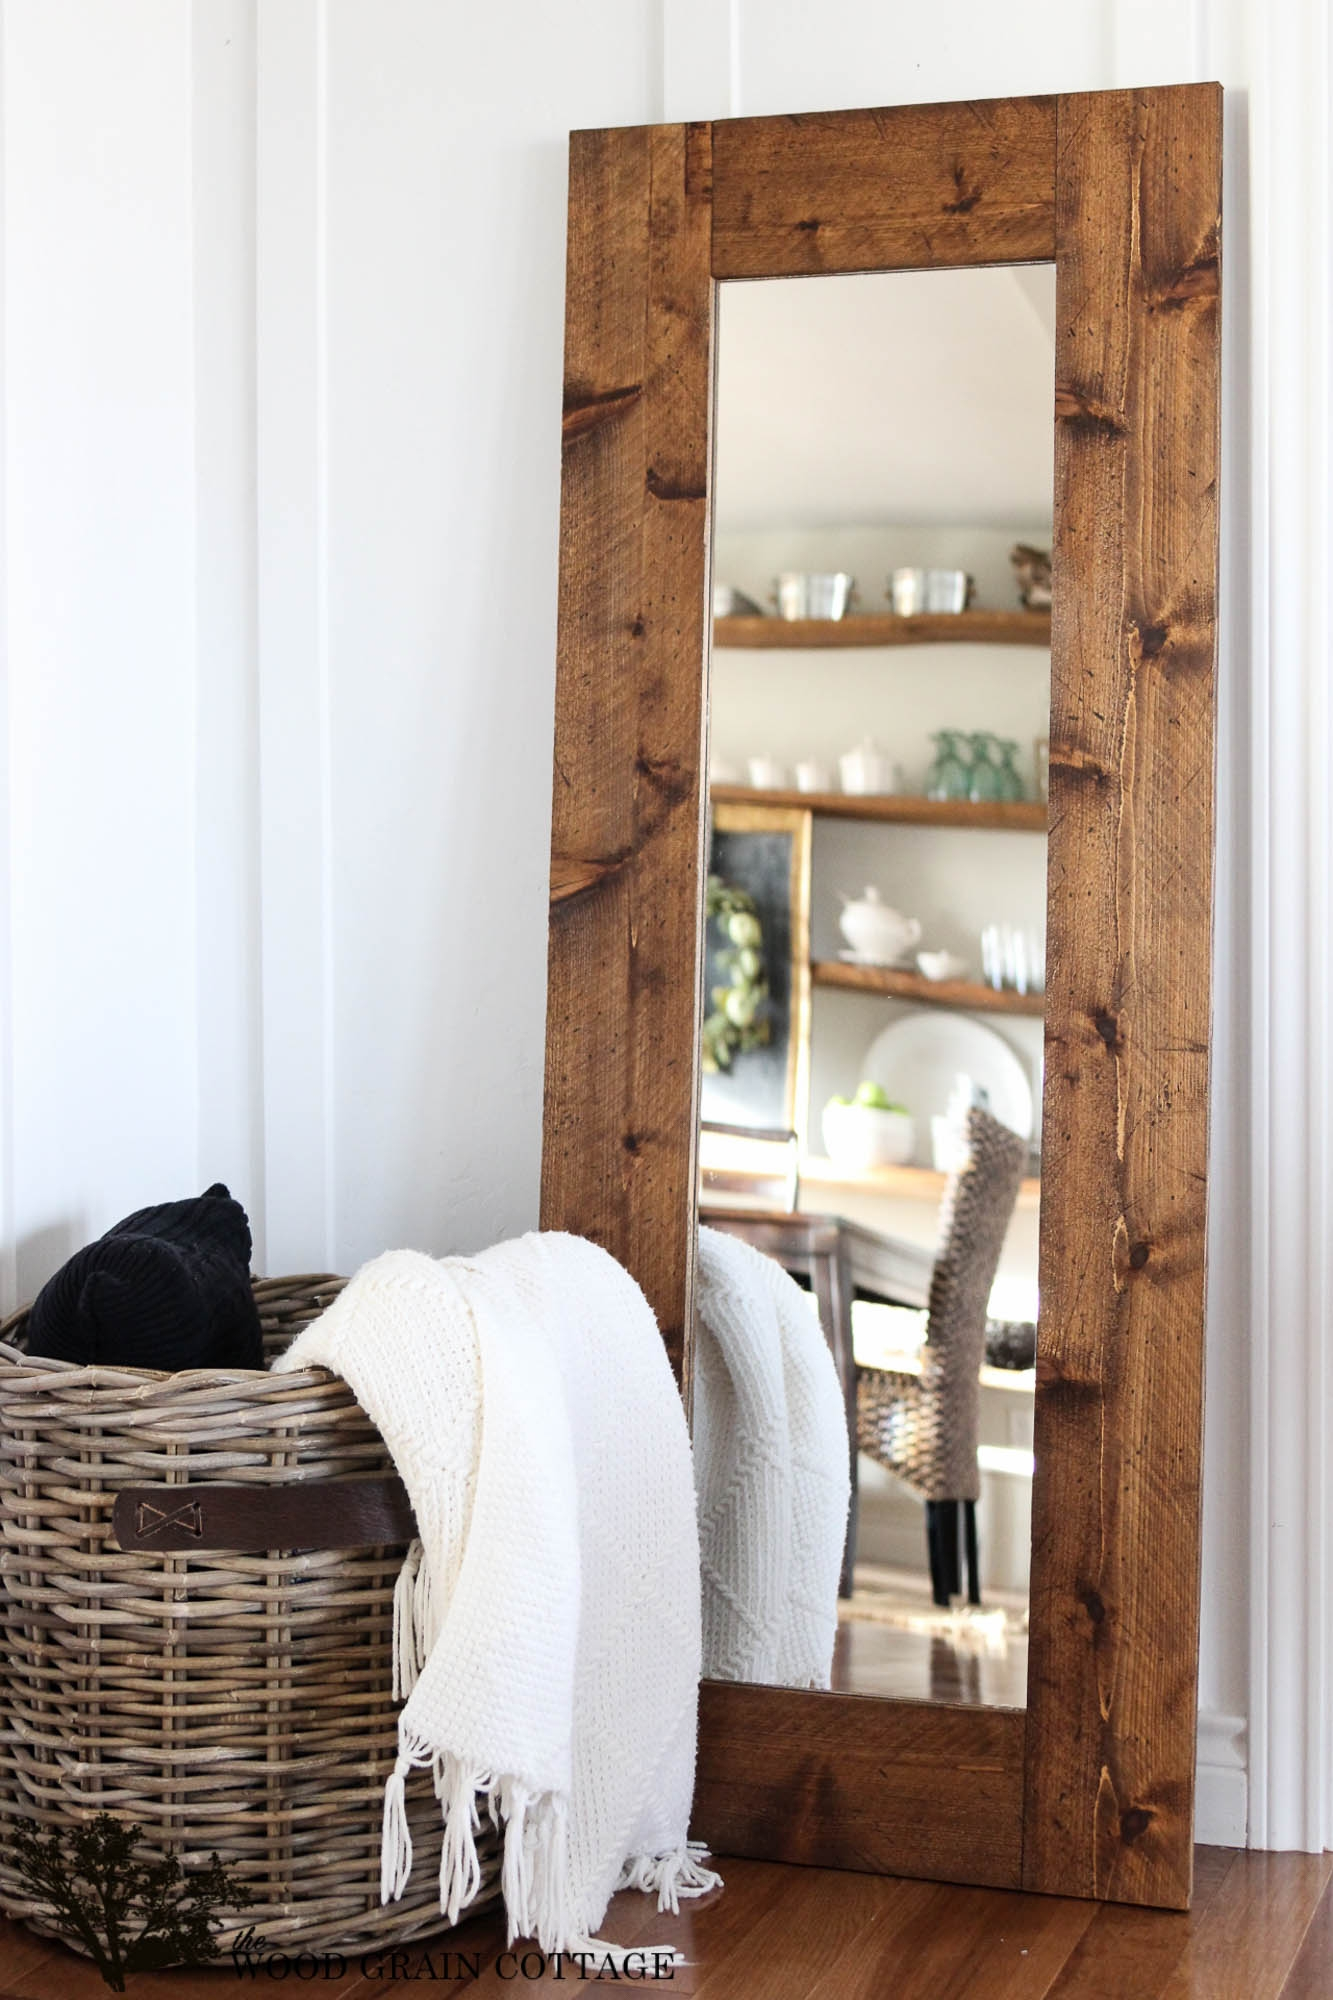 Diy Wood Framed Mirror The Wood Grain Cottage Within Rustic Oak Framed Mirrors (Image 5 of 15)